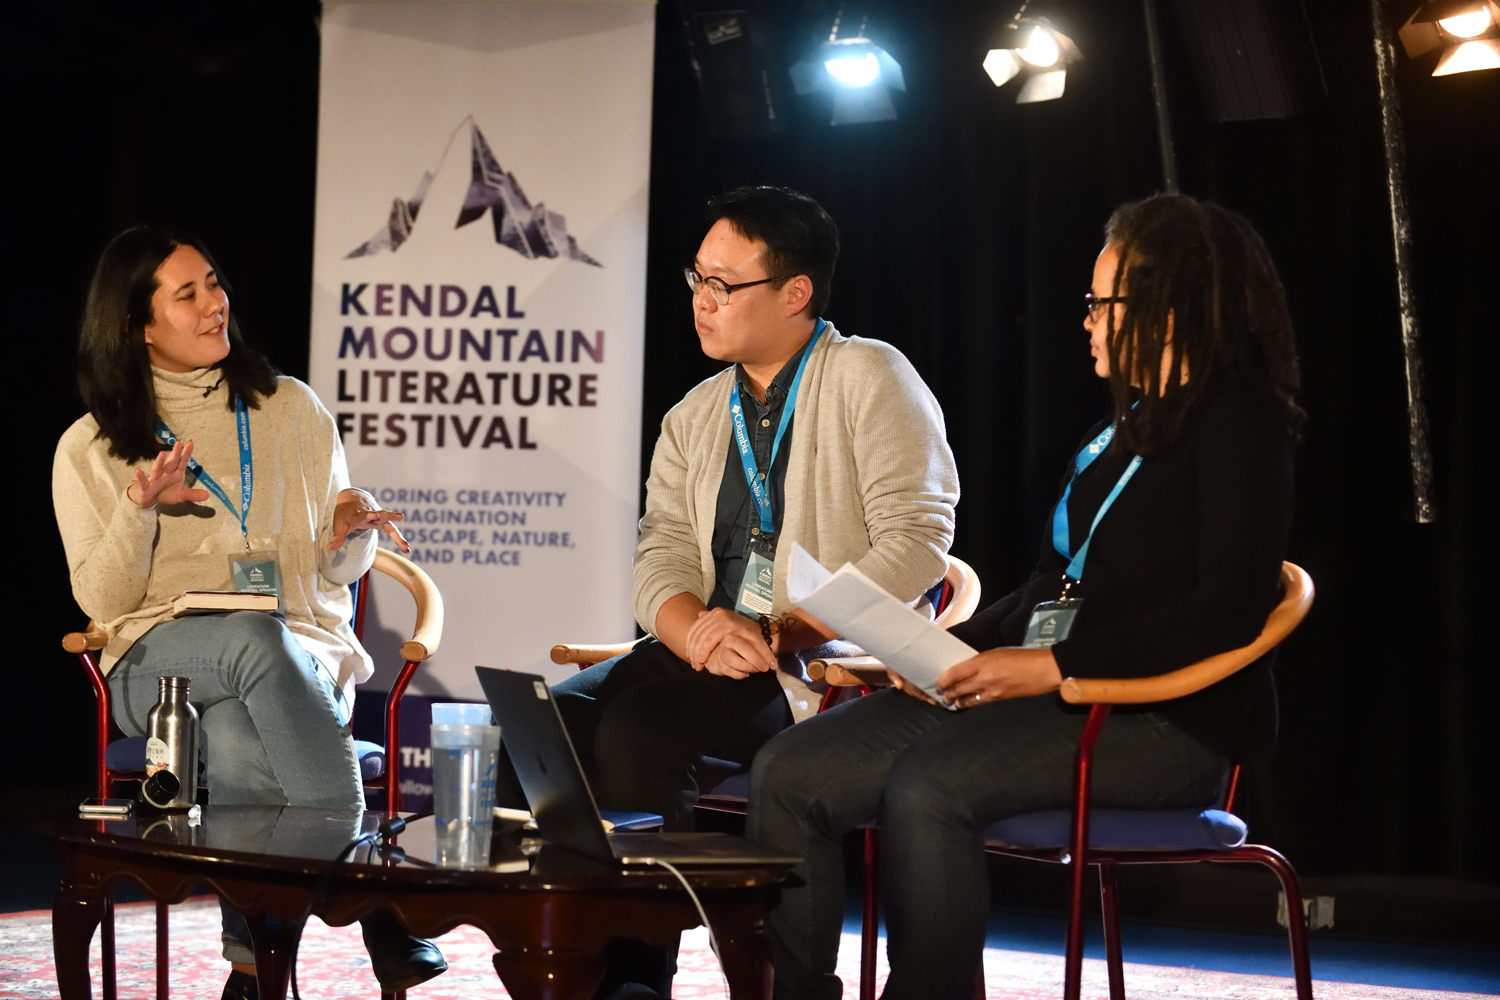 Founding editor of The Willowherb Review Jessica J. Lee, the poet Jay G Ying, and artist and writer Amanda Thomson at the 2019 Kendal Mountain Literature Festival. Photo courtesy of Kendal Mountain Literature Festival, 2019